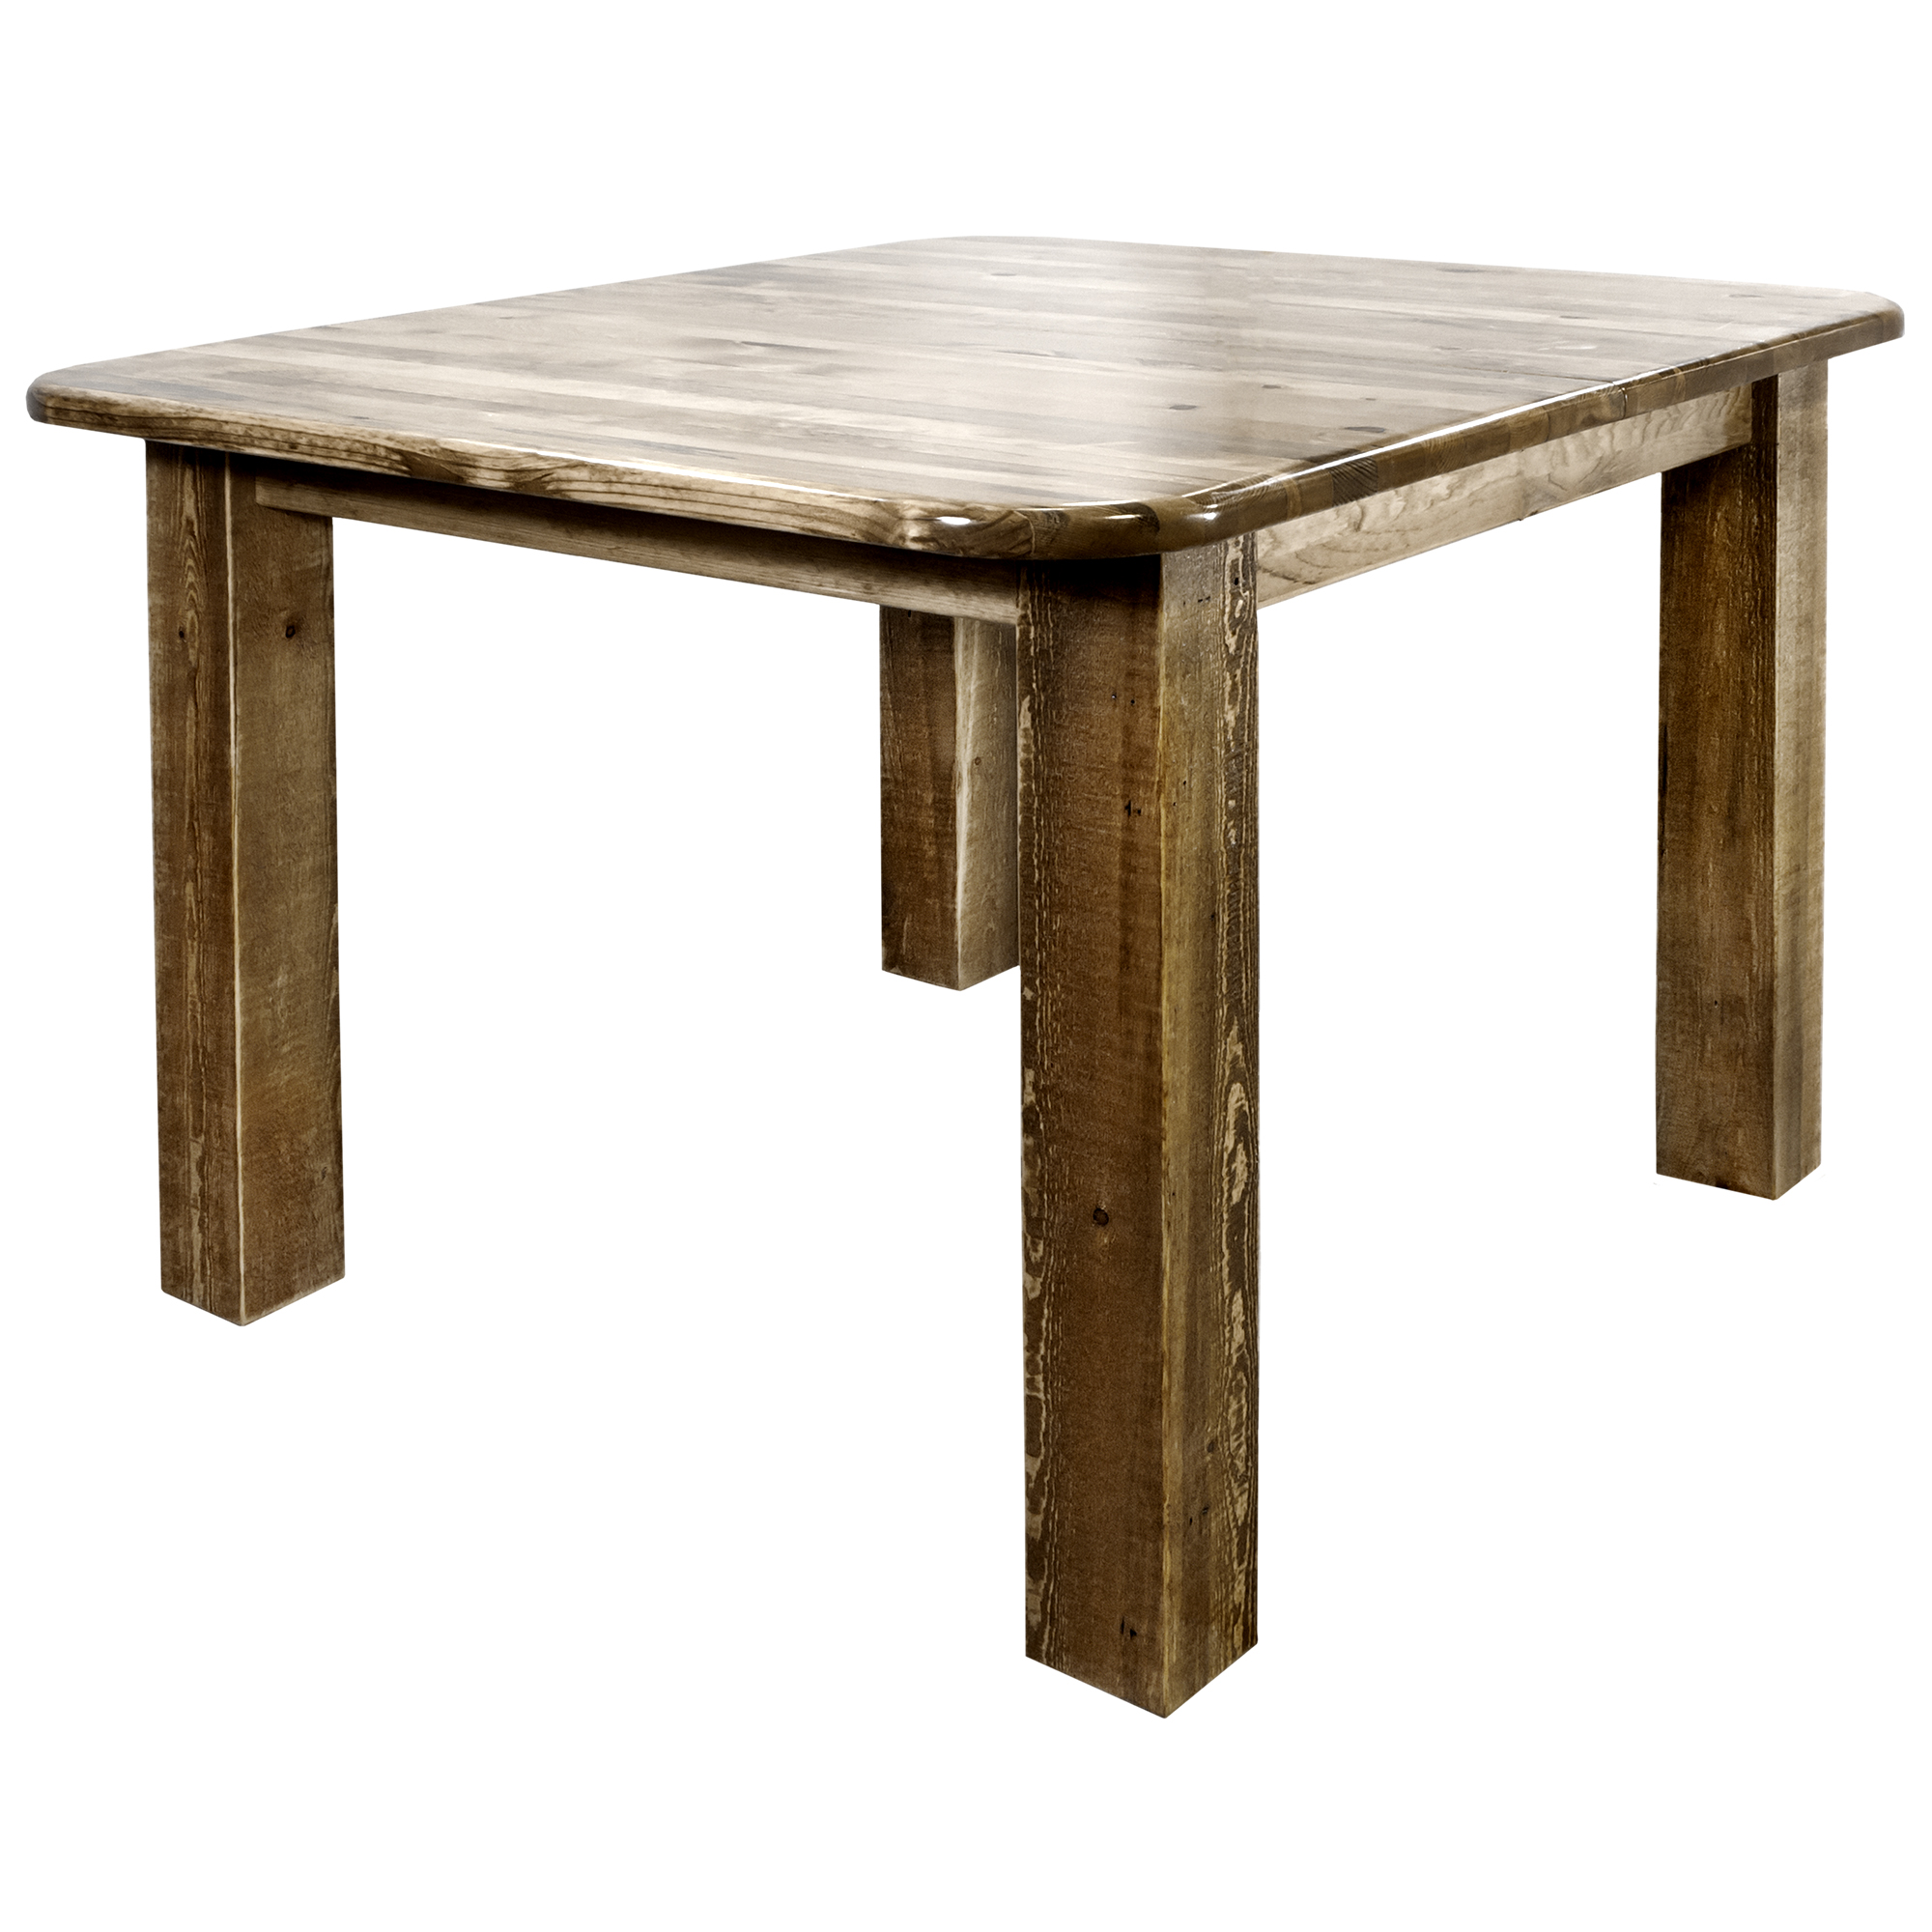 Homestead Collection Square 4 Post Dining Table, Stain & Clear Lacquer Finish